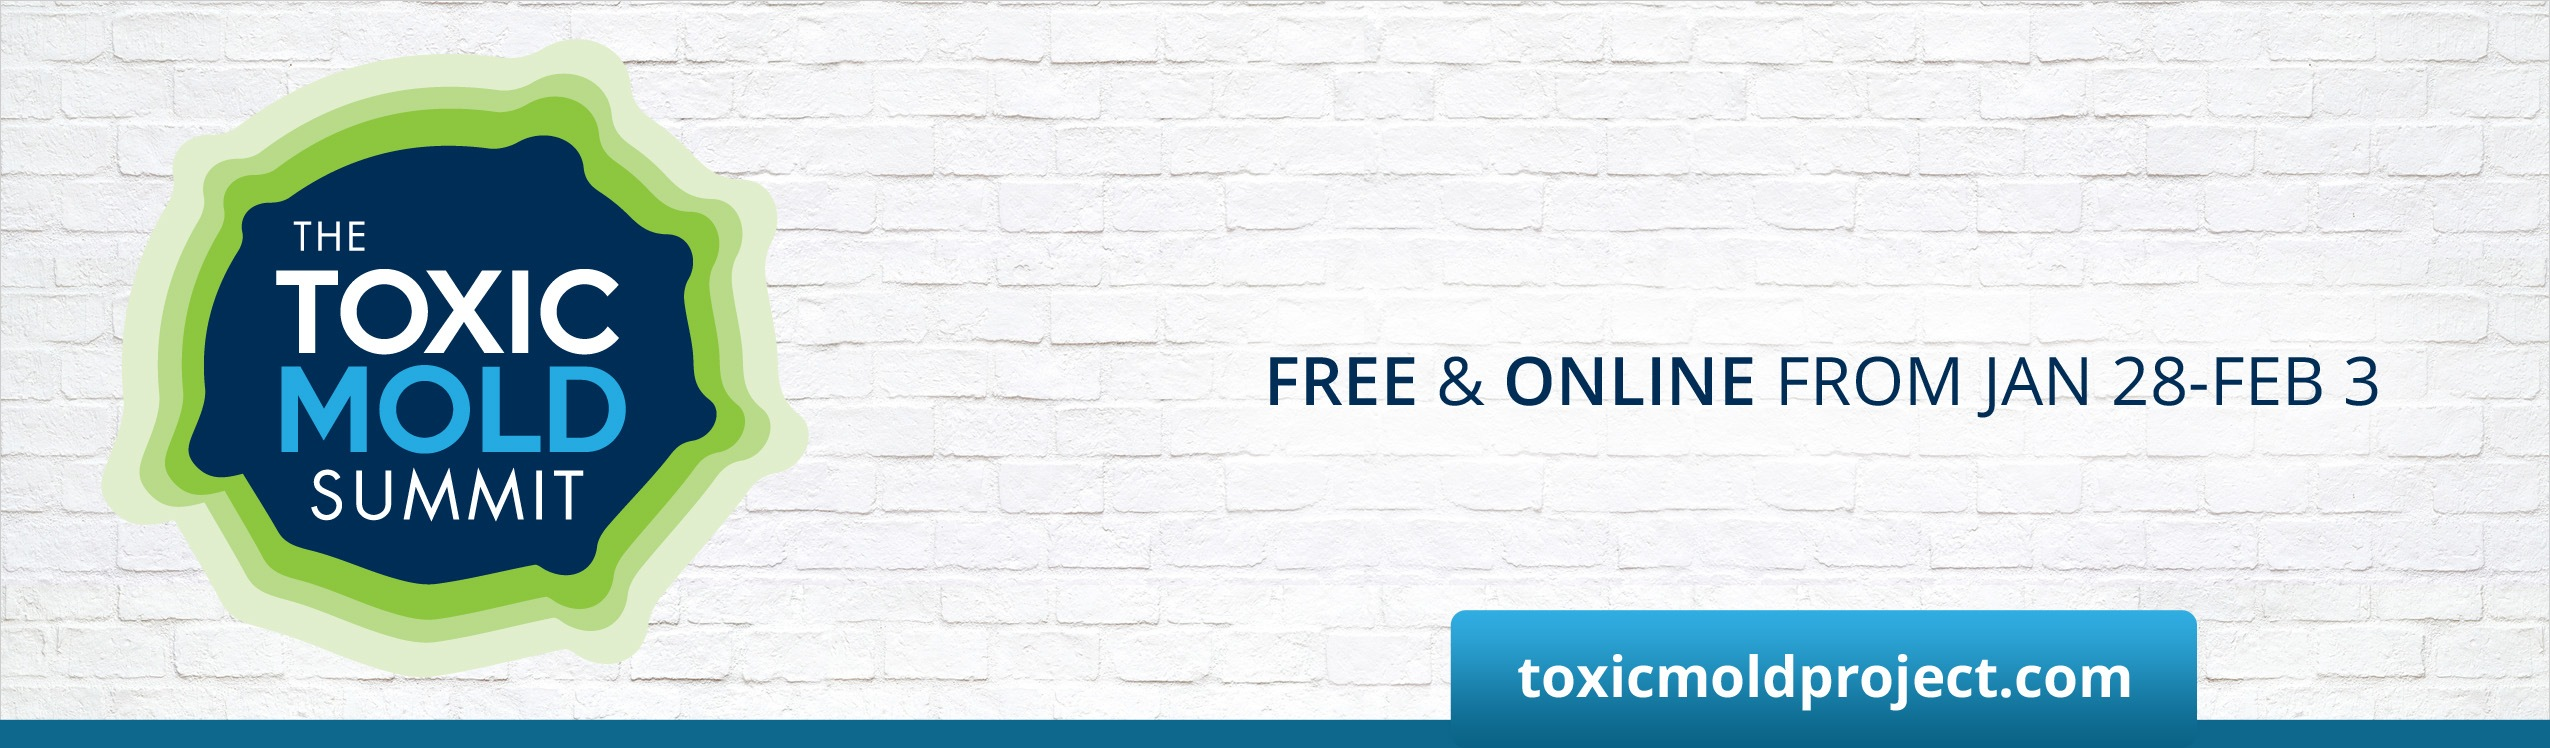 Toxic Mold banner